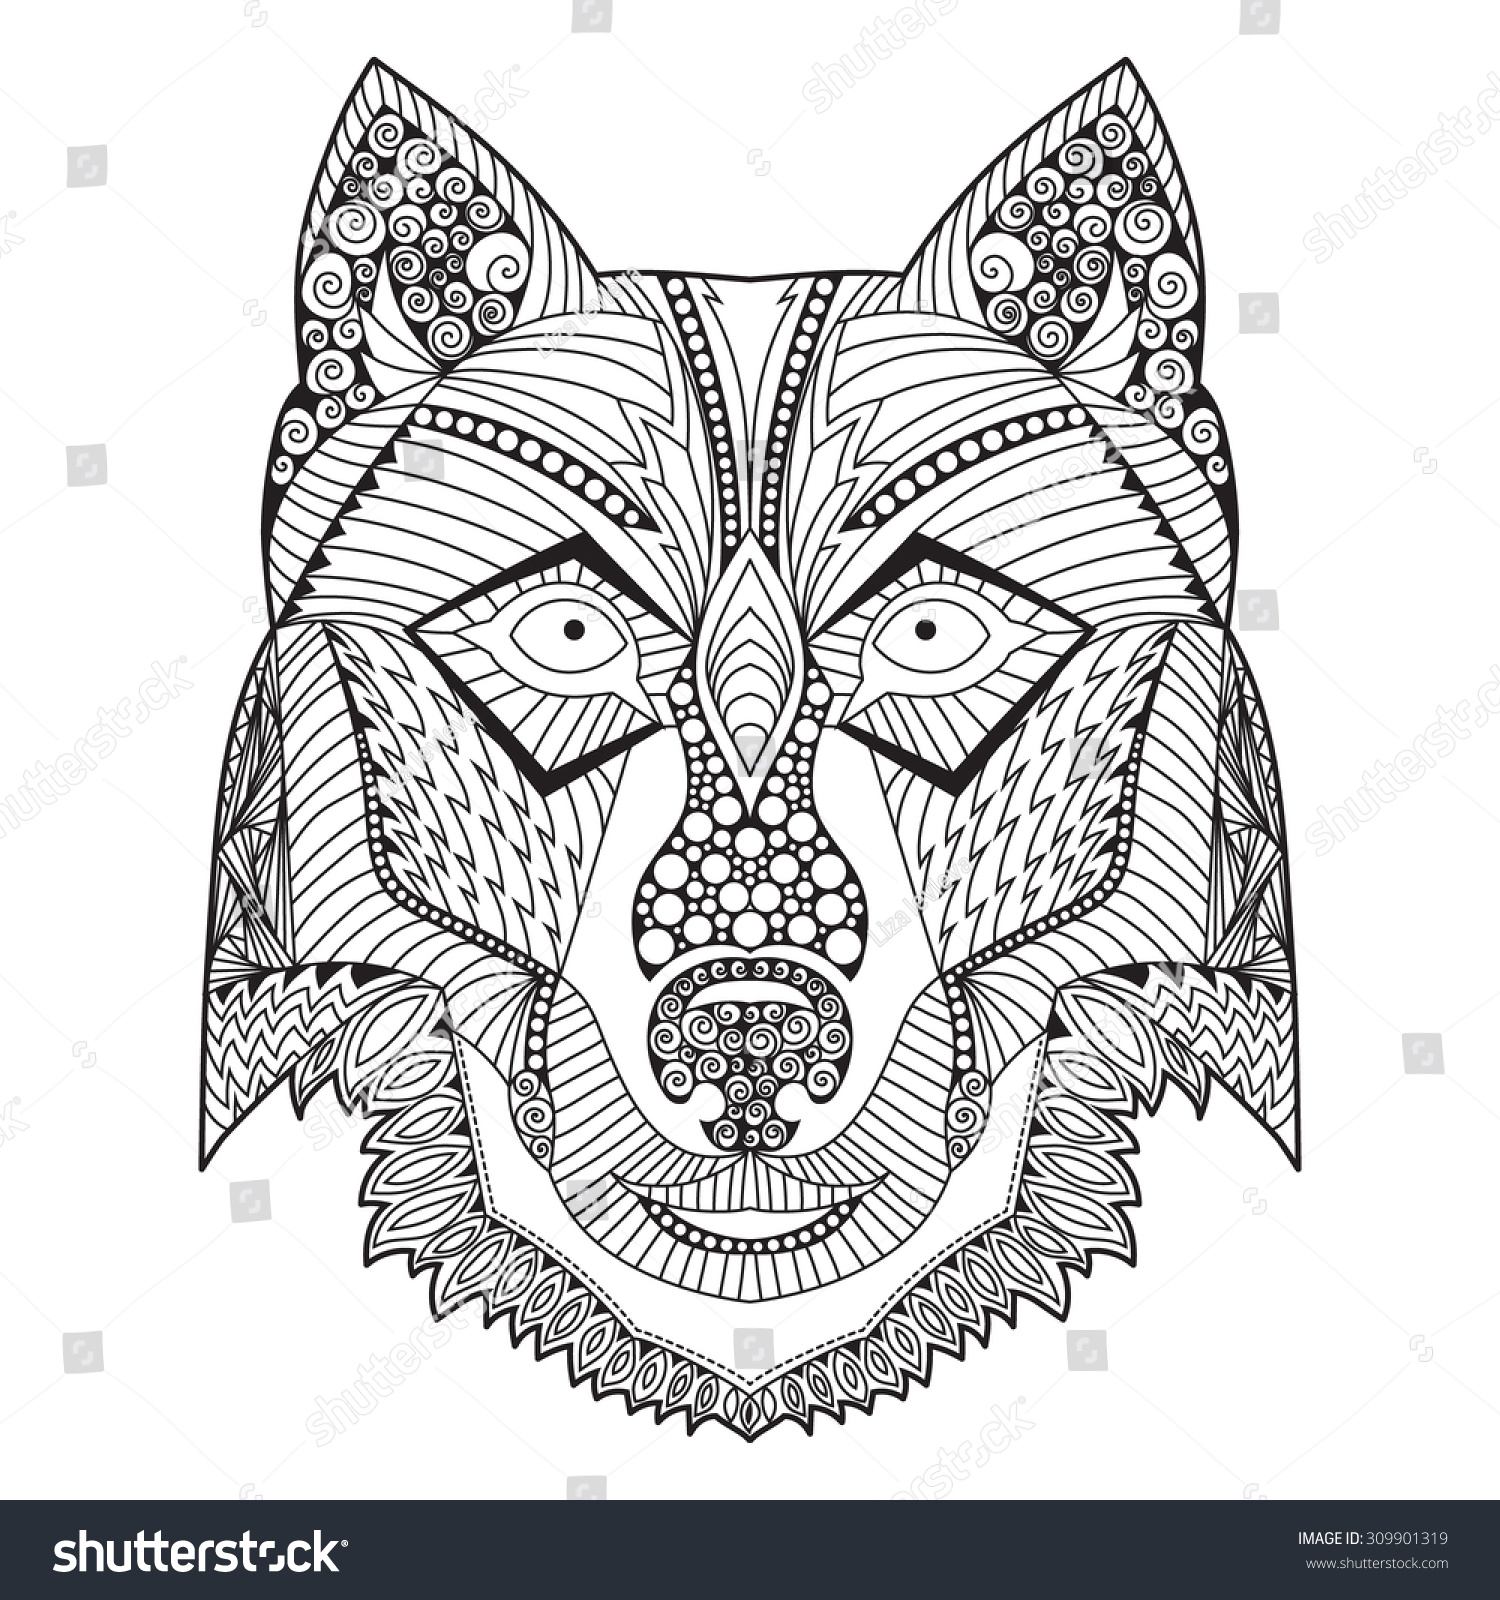 Coloring pages for adults wolf - Colouring For Adults Wolf Coloring Book Page With Hand Drawn Zentangle Ethnic Style Wolf Head